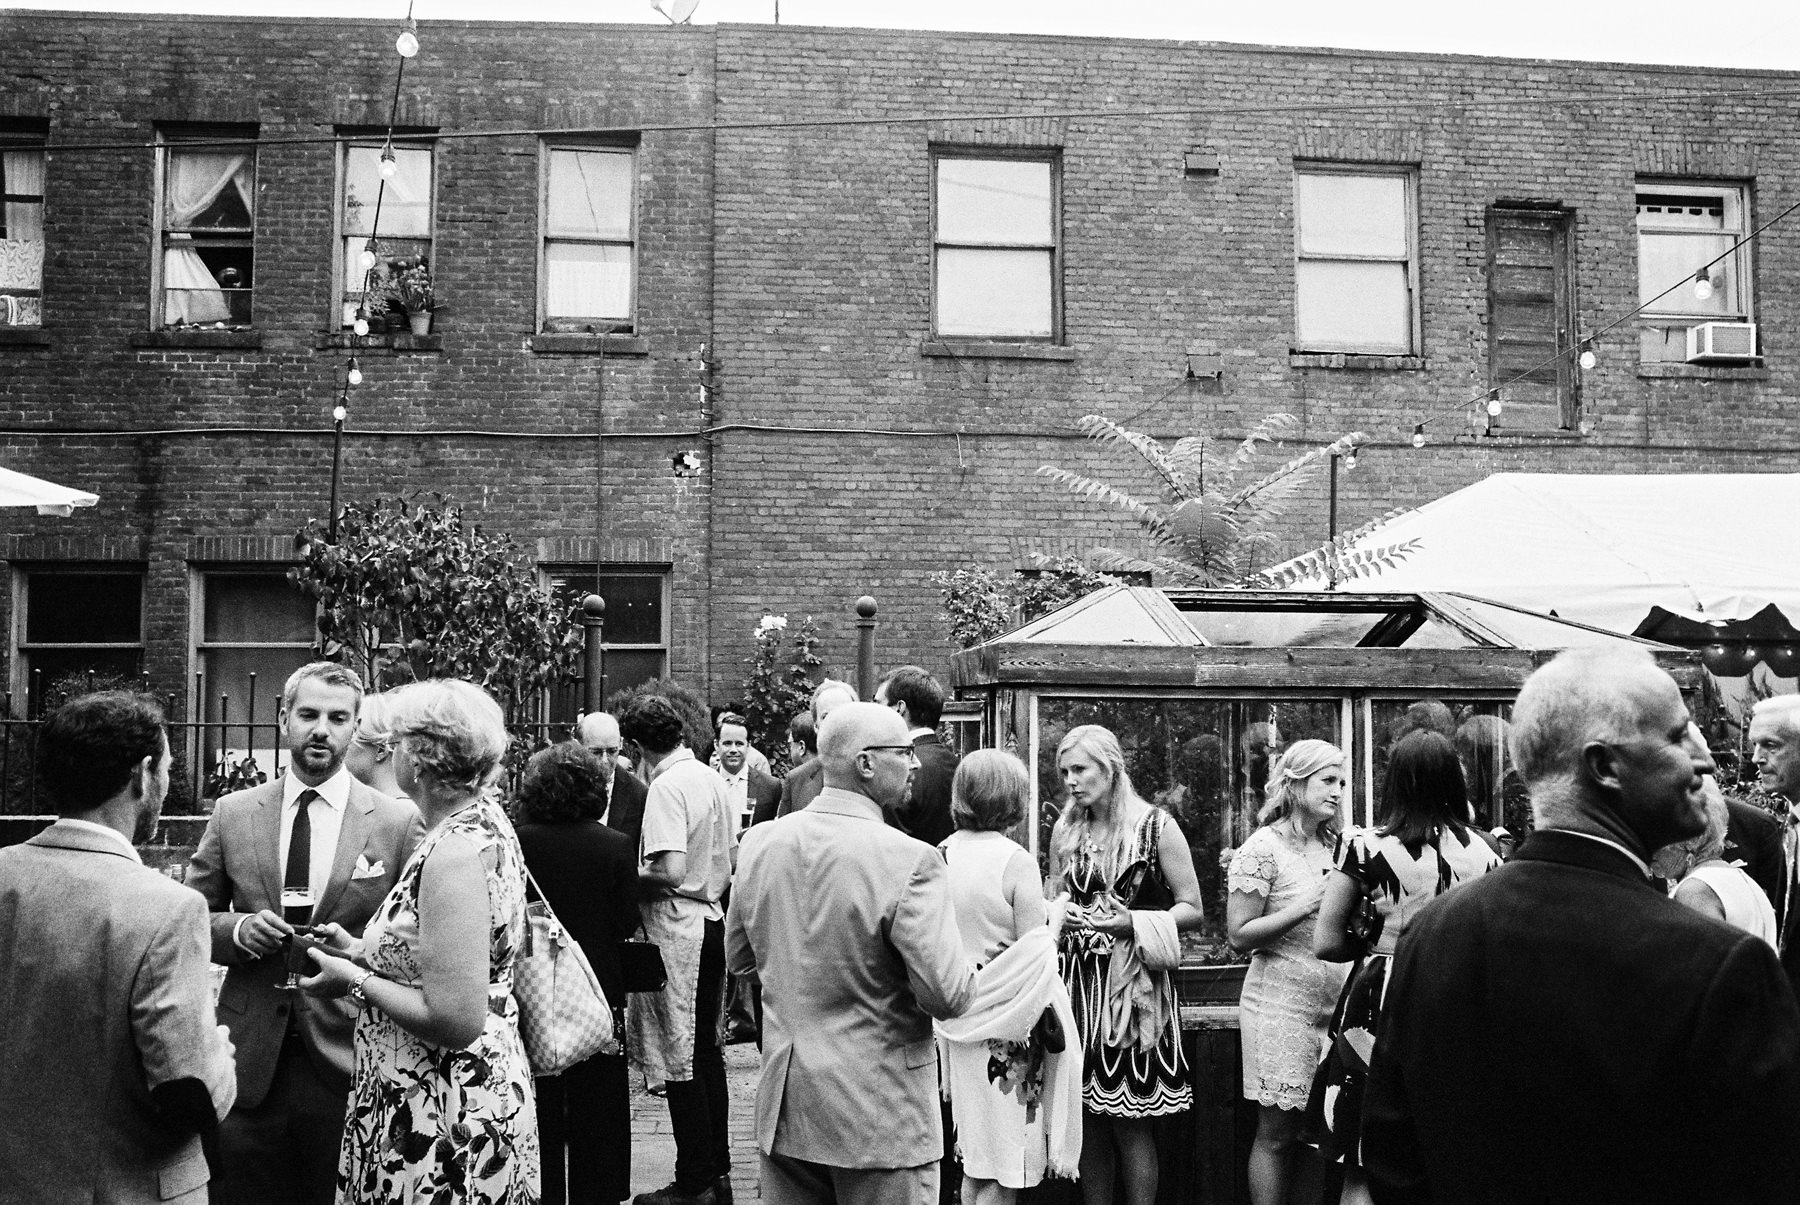 245-wedding-reception-in-the-alley-outside-the-corson-building.jpg